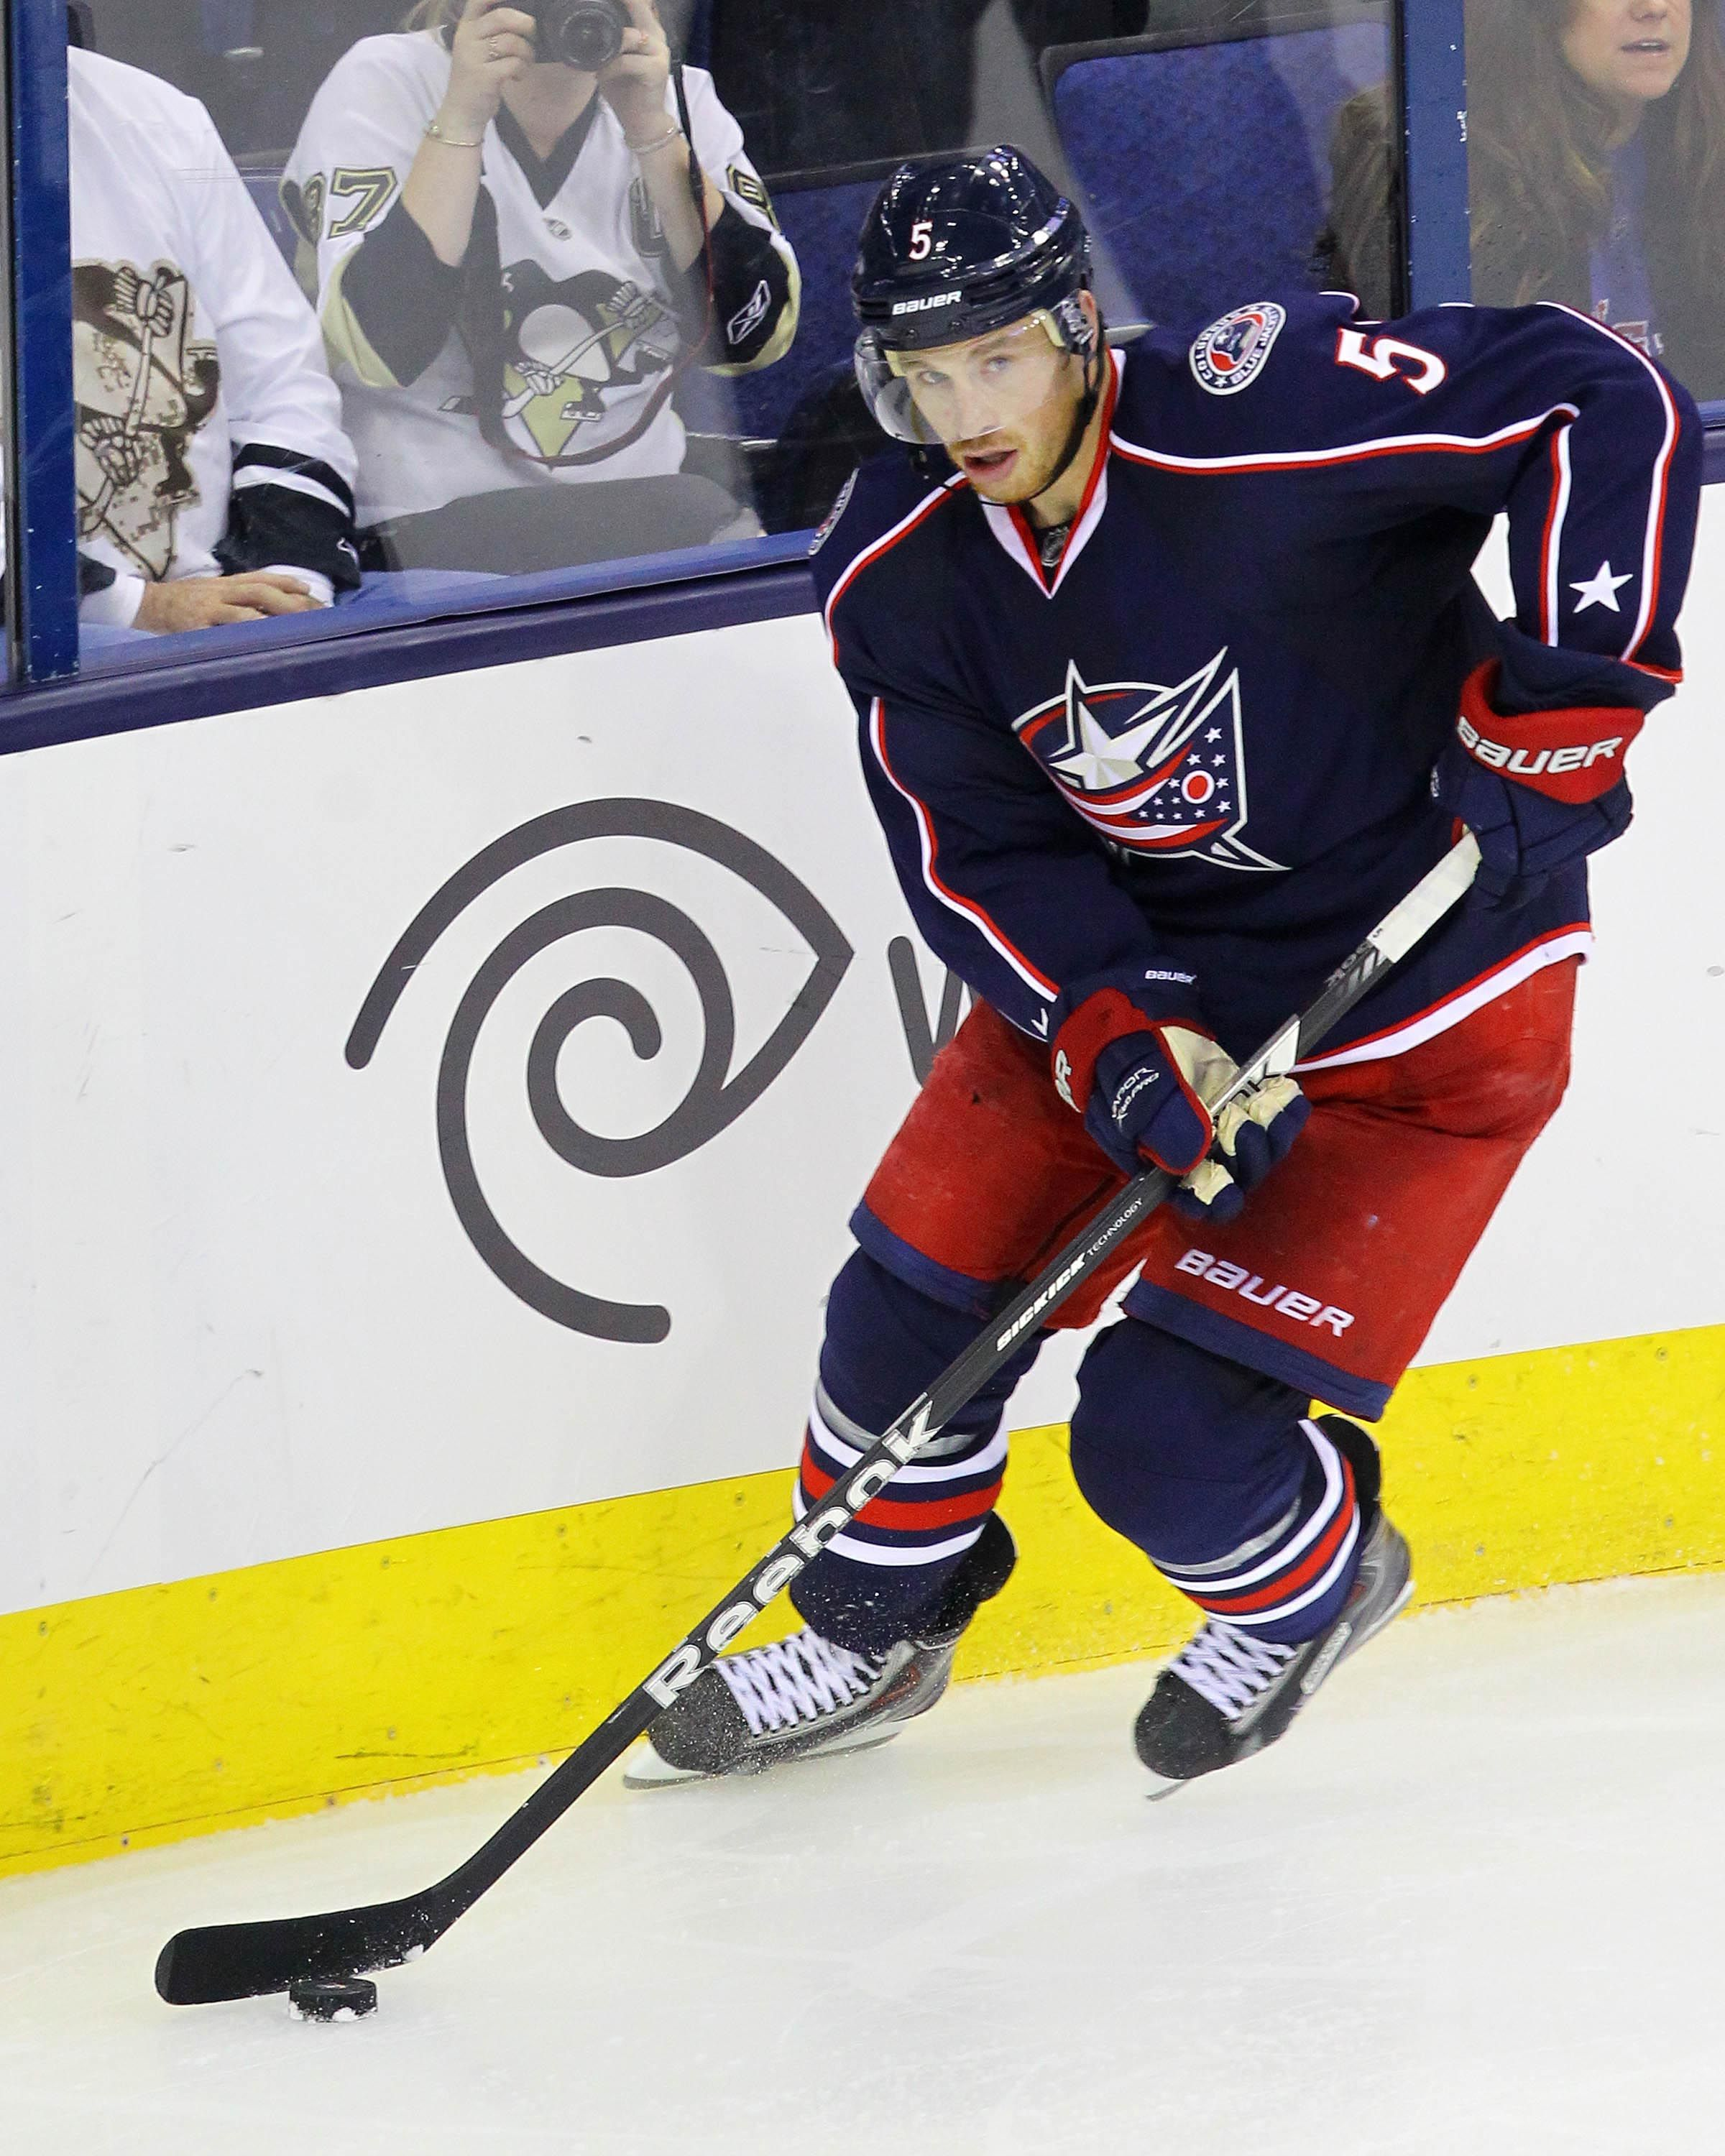 CrowdCam Hot Shot: Columbus Blue Jackets forward Jack Skille skates with the puck during the 3rd period of the game against the Pittsburgh Penguins at Nationwide Arena. Photo by Rob Leifheit